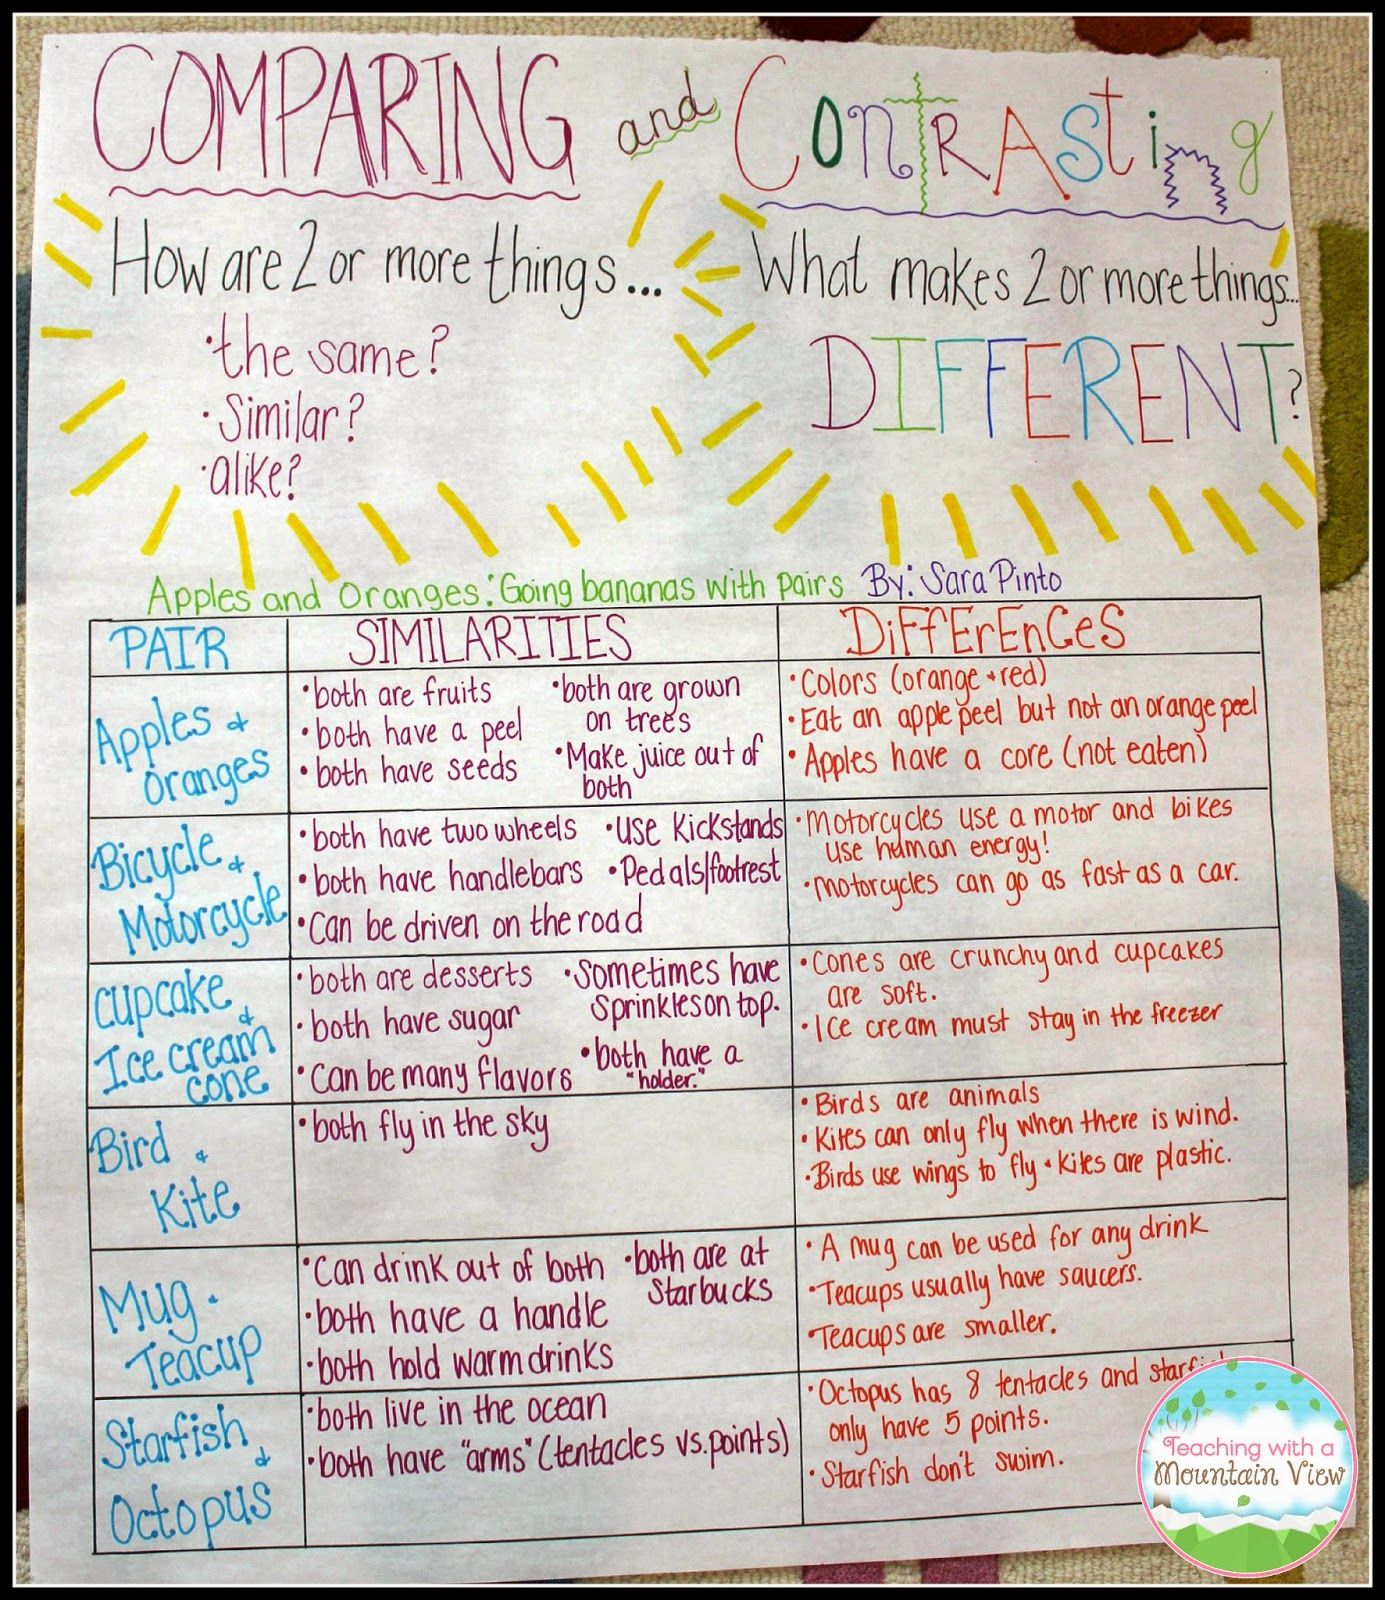 Teaching Children to Compare & Contrast